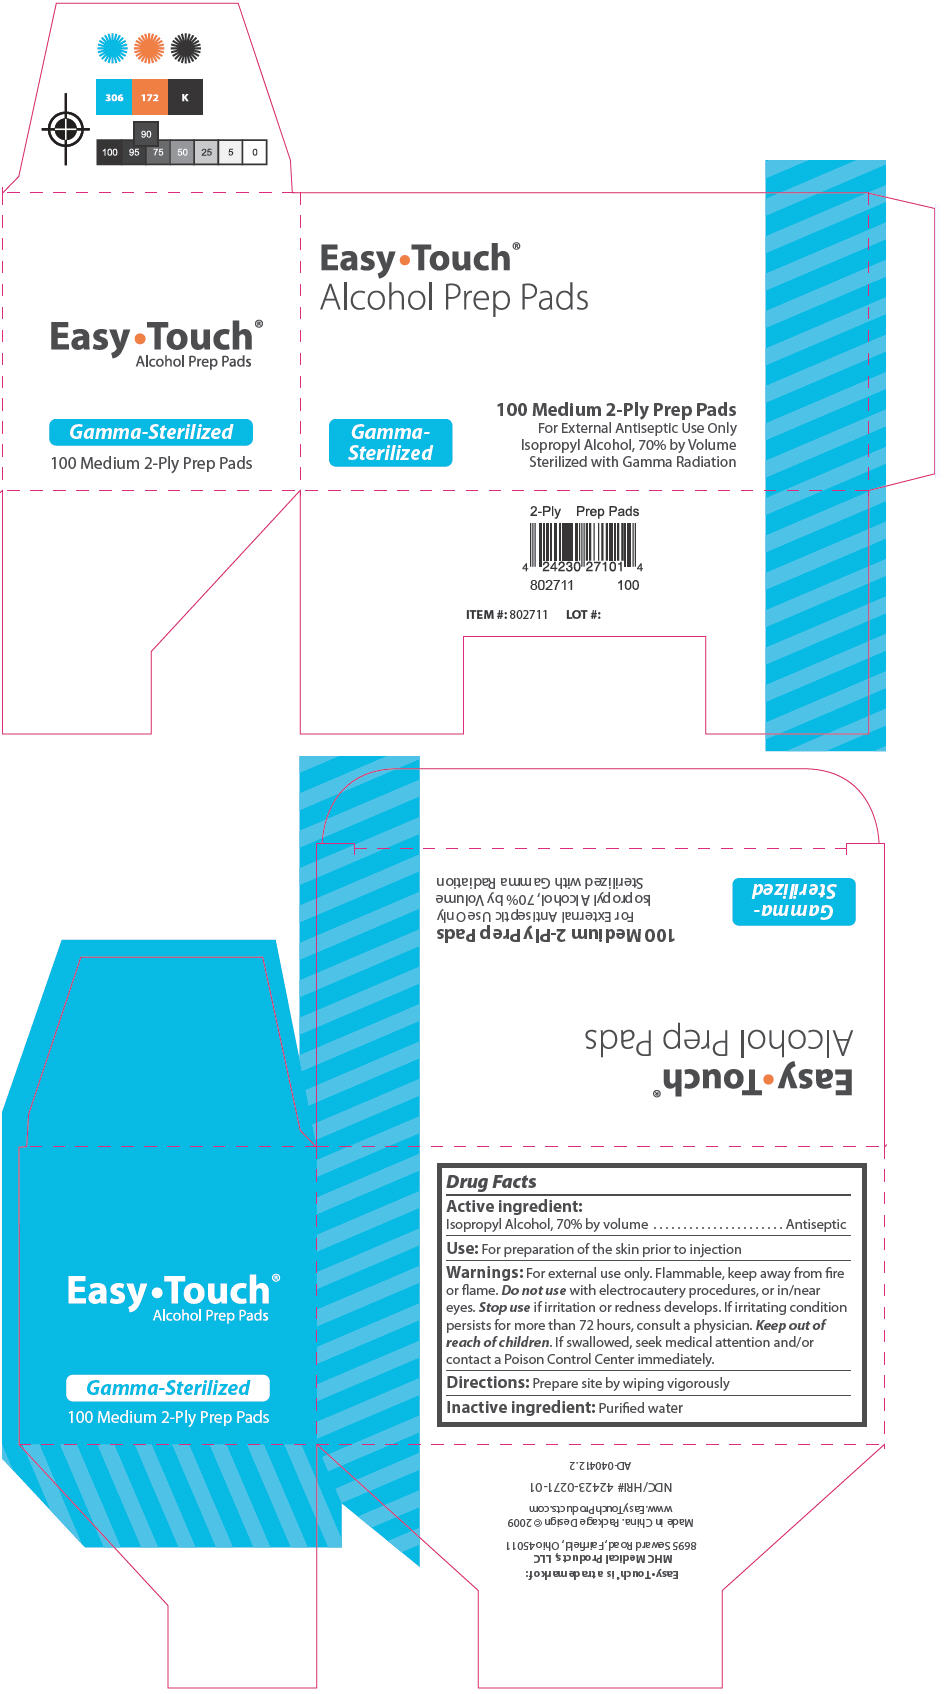 Easytouch Alcohol Prep Pads Sterile (Isopropyl Alcohol) Swab [Mhc Medical Products, Llc]